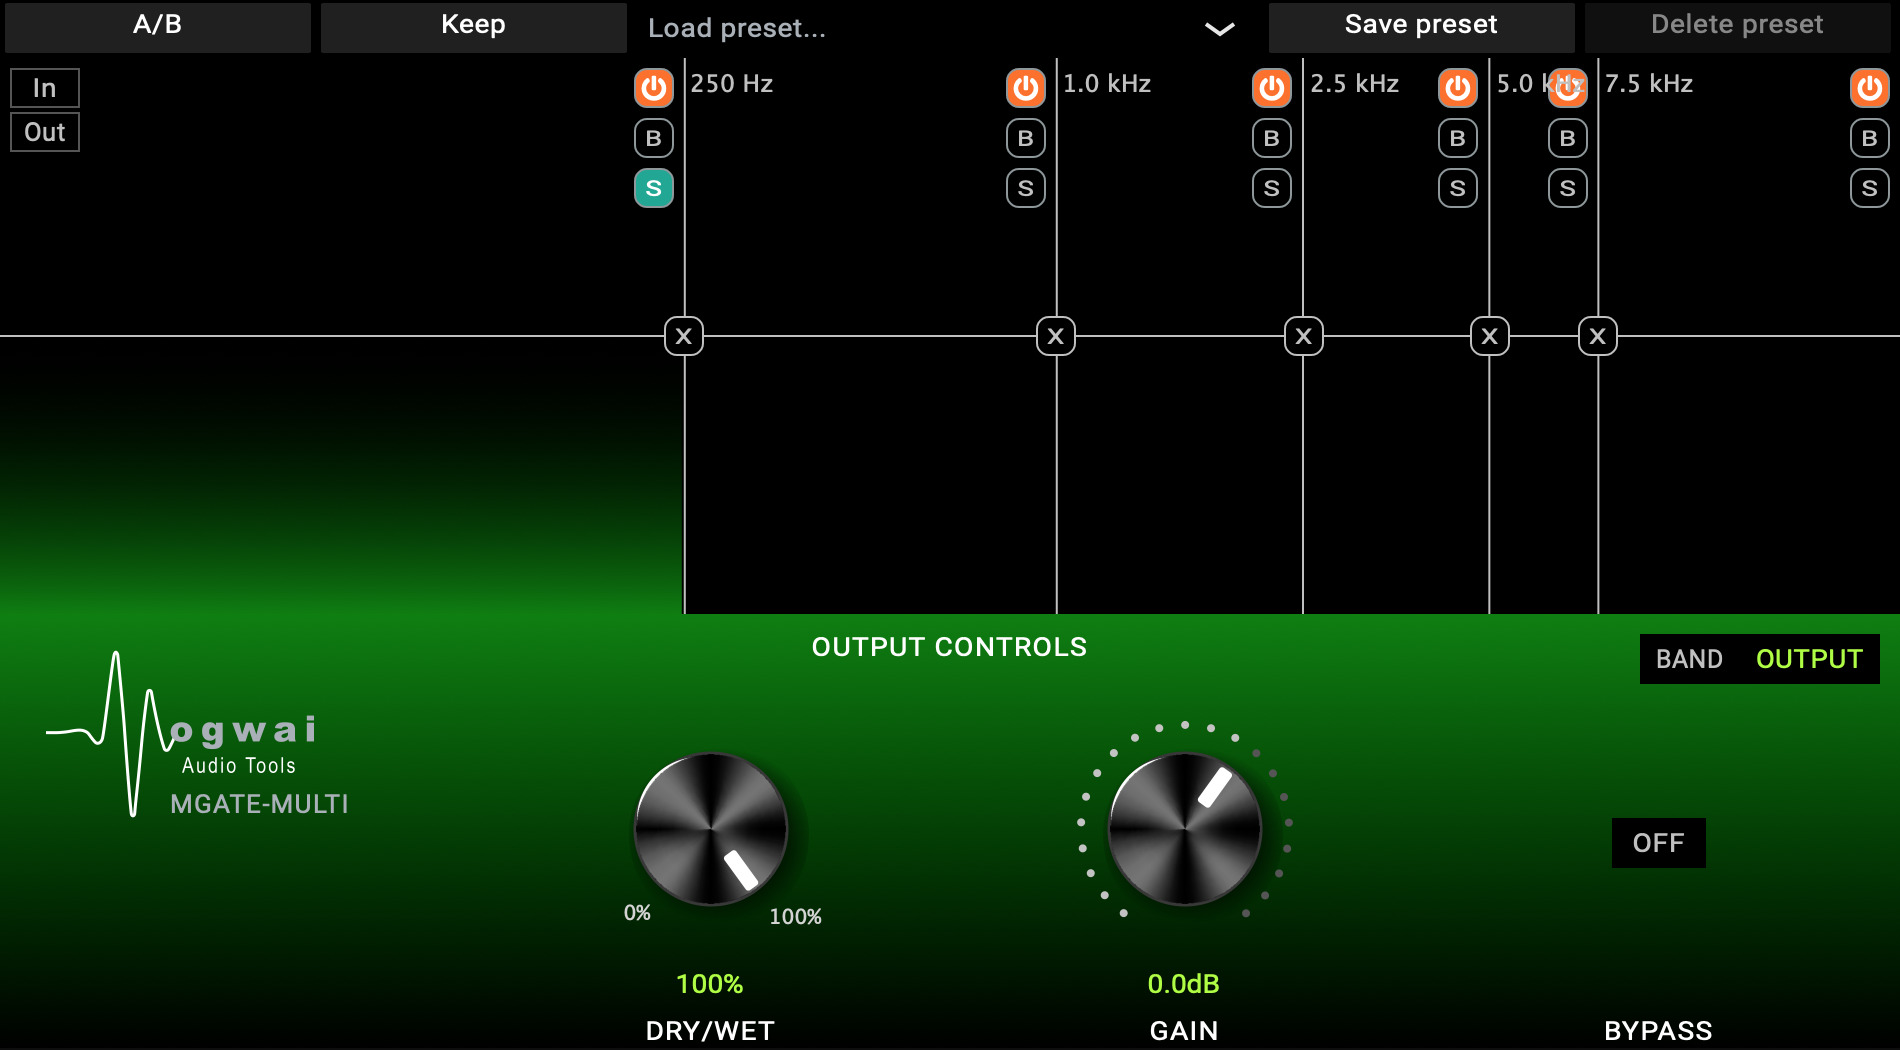 MGATE-MULTI, multiband gate output controls